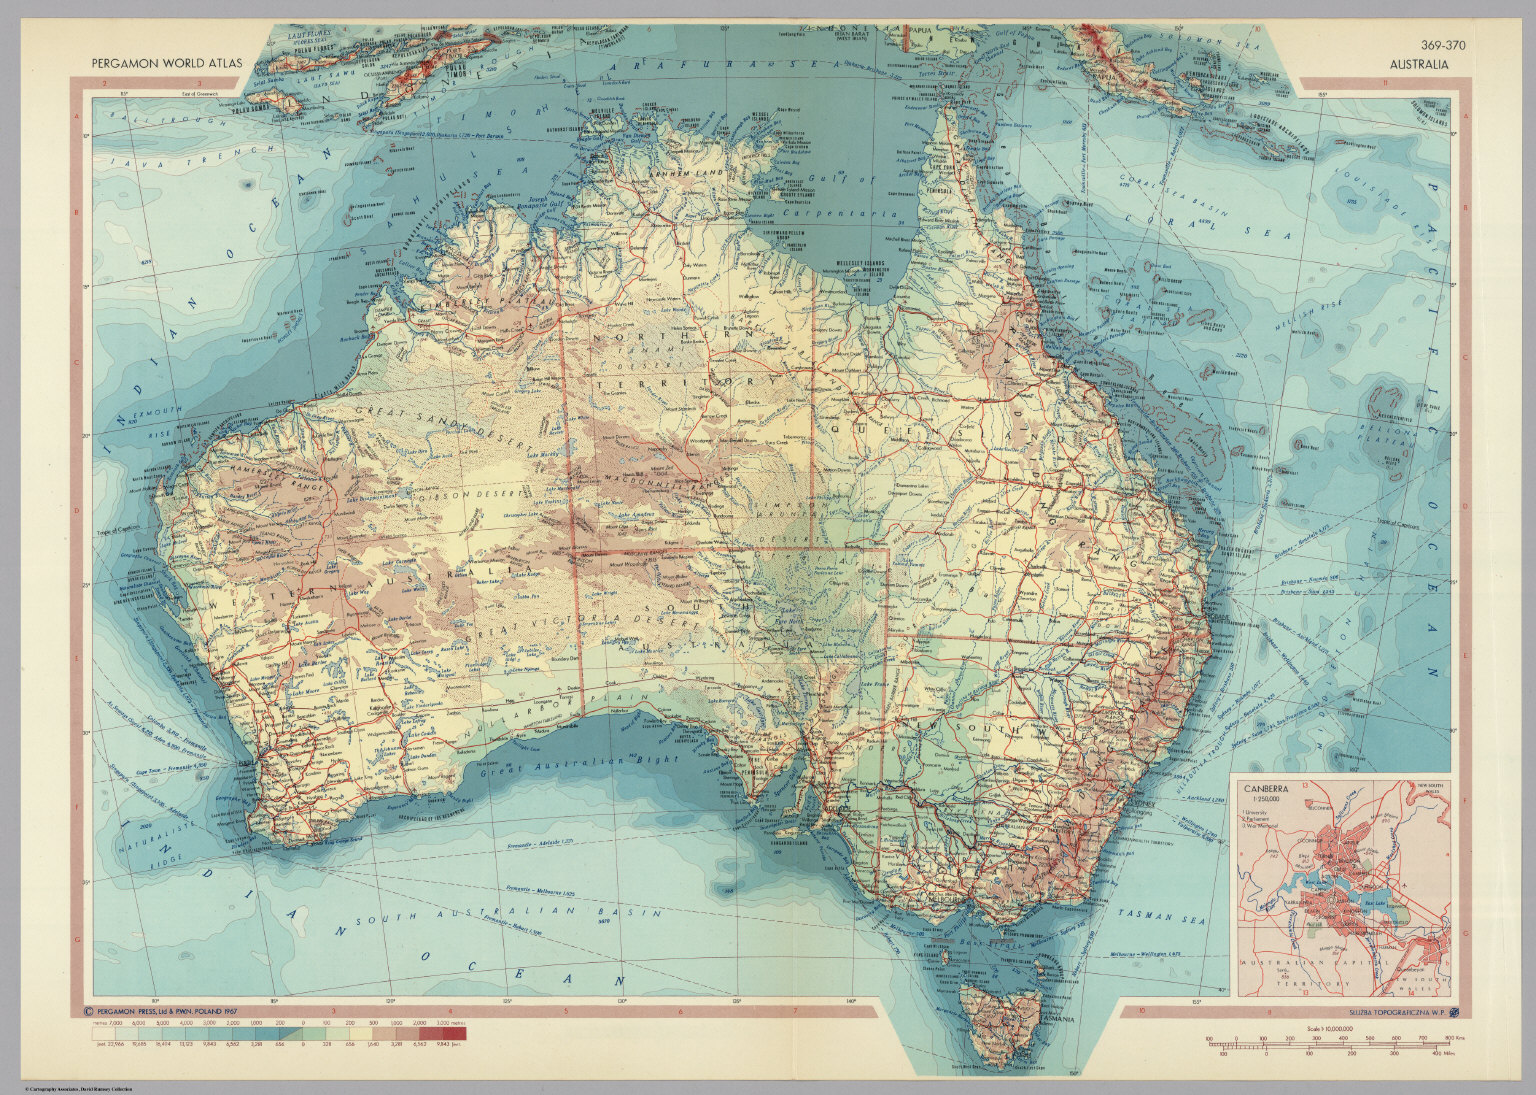 Buy Map Of Australia.Australia Pergamon World Atlas David Rumsey Historical Map